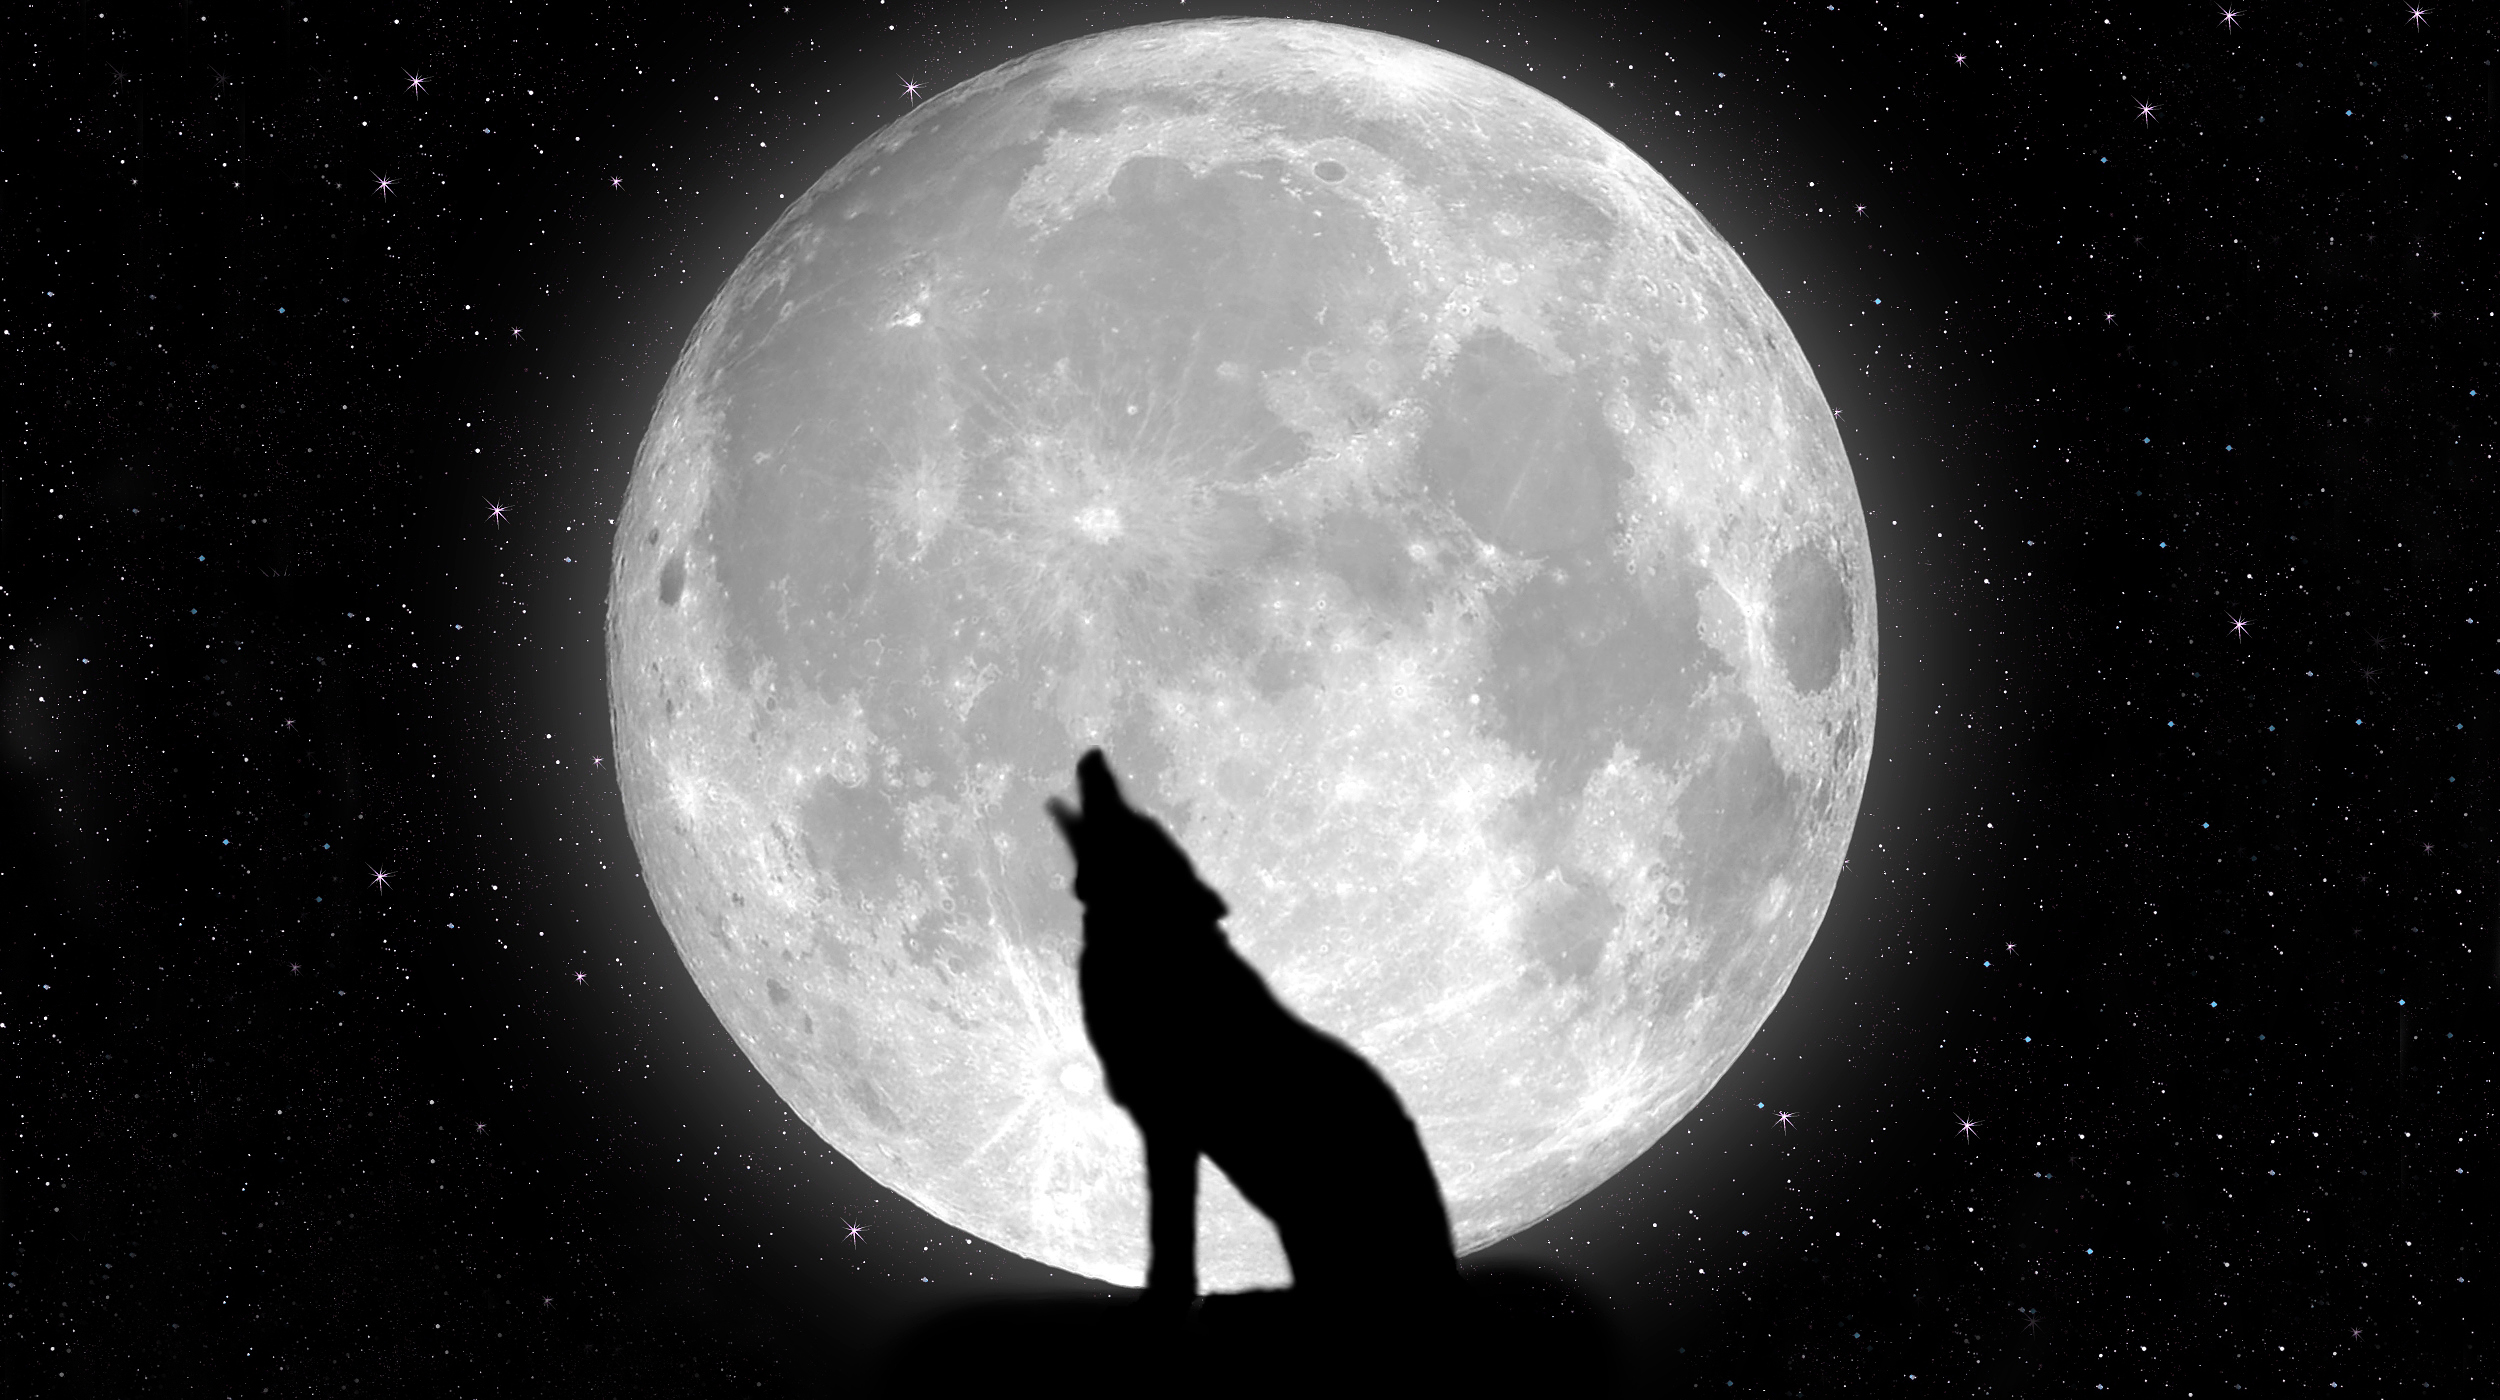 Hd wallpaper wolf - Wallpaper Black Wolf Backgrounds Hd Wallpaper Background Desktop